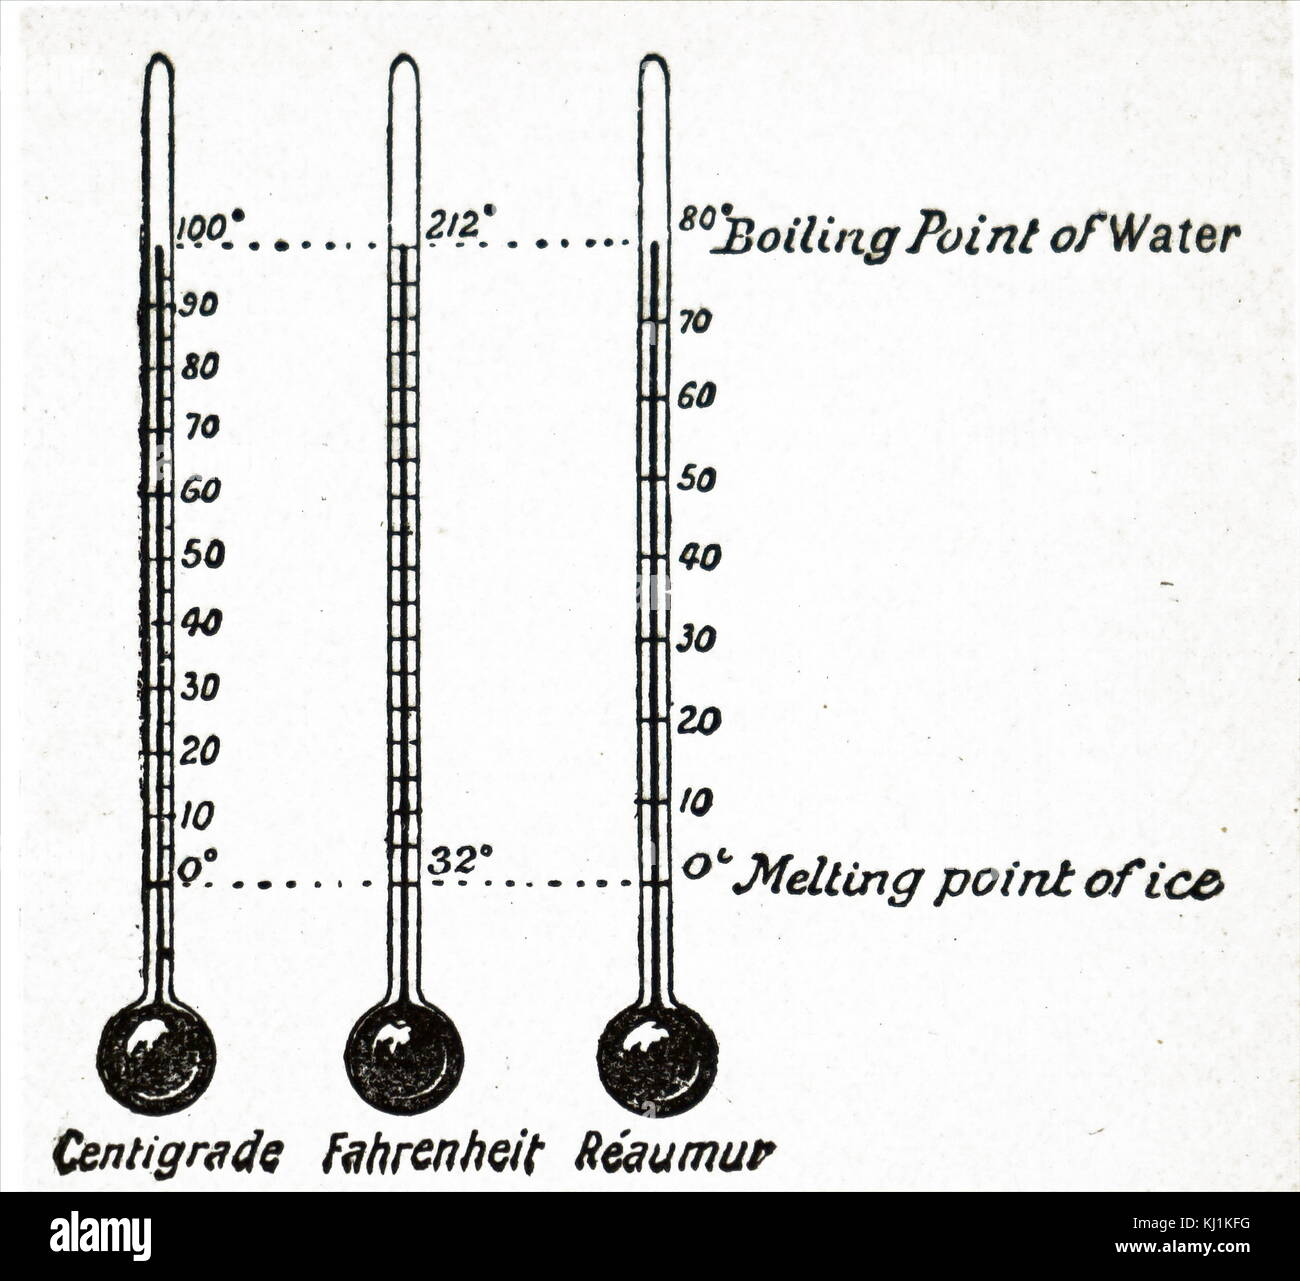 Engraving depicting three thermometer scales - centigrade, Fahrenheit and Réaumur. Dated 19th Century - Stock Image